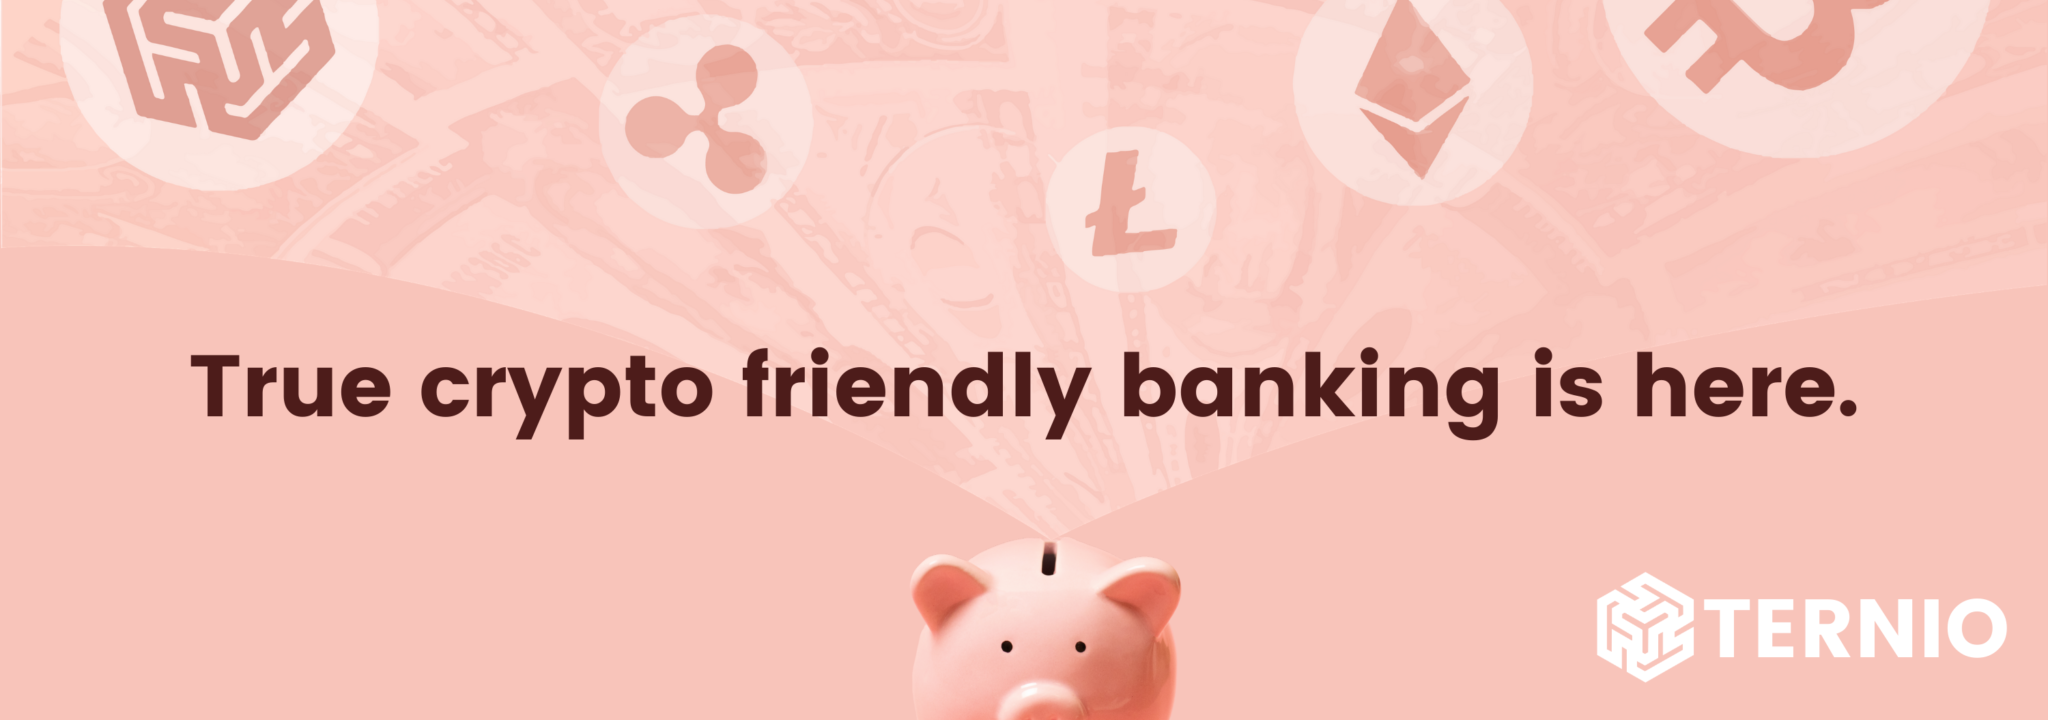 True Crypto Friendly Banknig is Here.